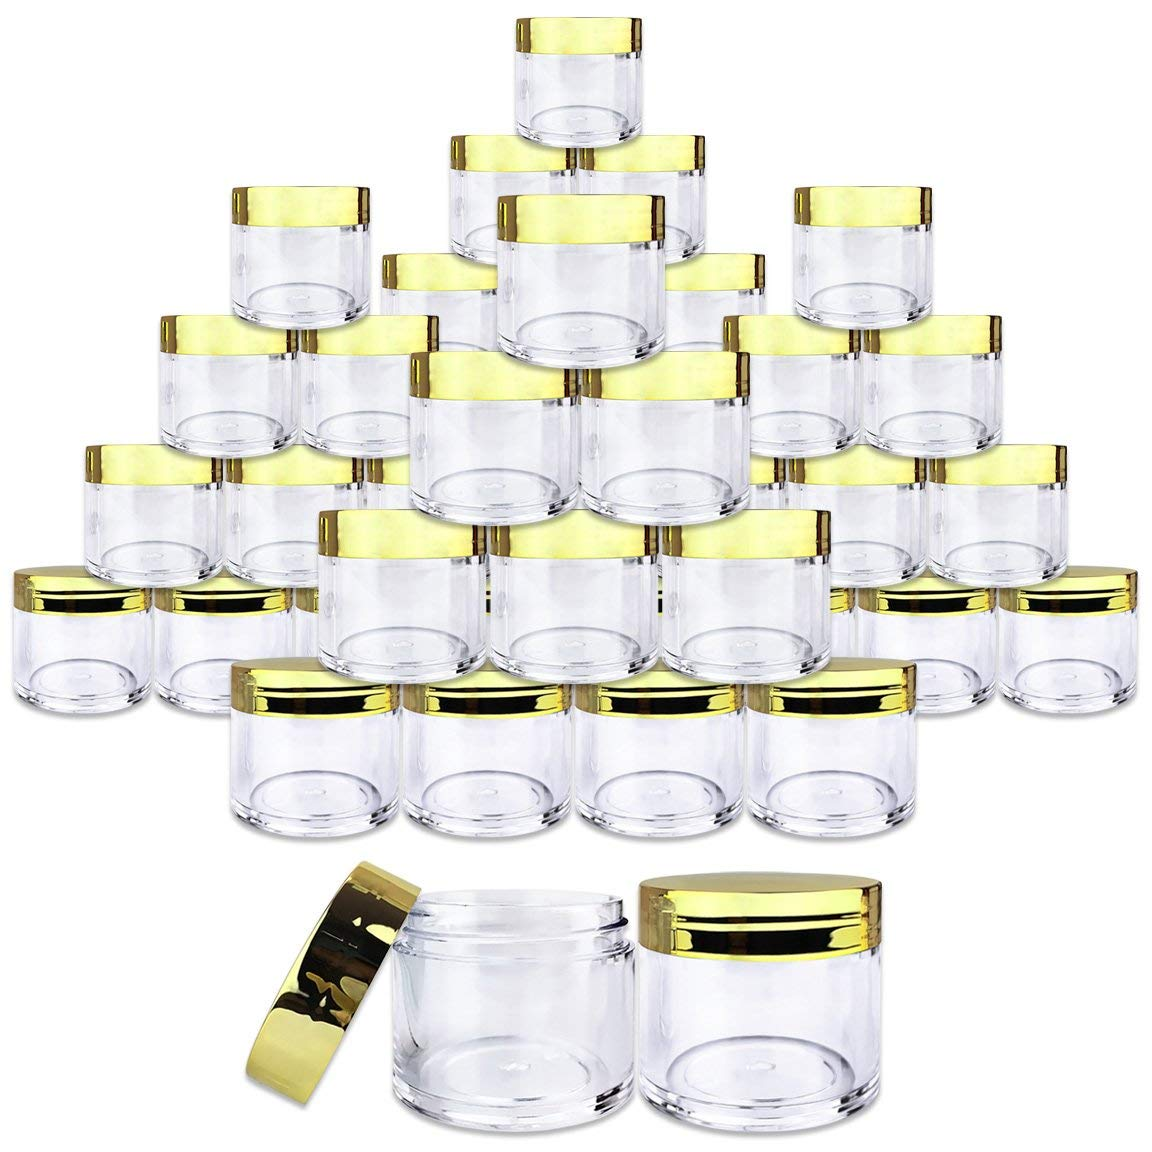 Beauticom 30G/30ML(1 Oz) Thick Wall Round Plastic Container Jars with Flat Top Lids - Leak-Proof Jar - BPA Free (300 Pieces, GOLD)